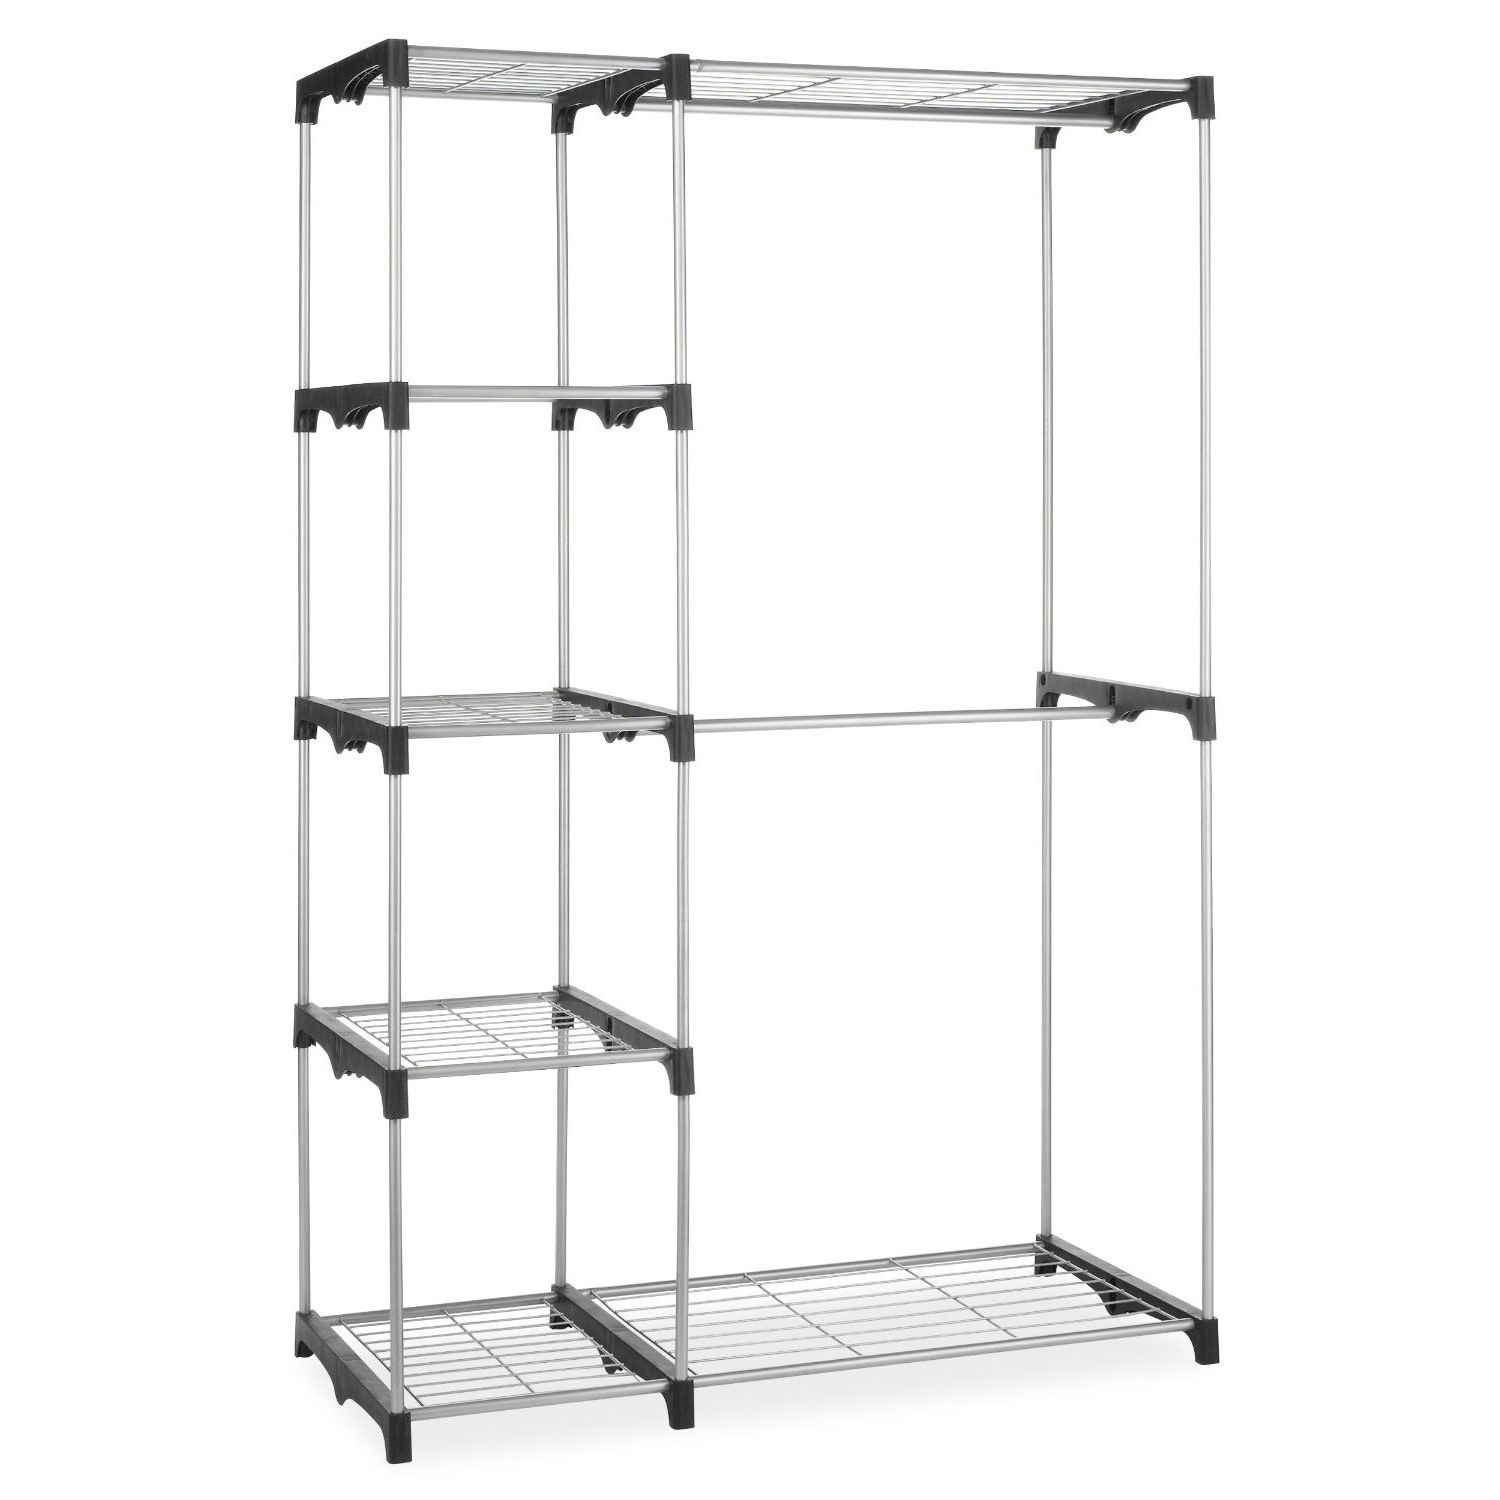 Ordinaire Freestanding Closet Organizer Garment Rack Storage Unit With Hanging Rods